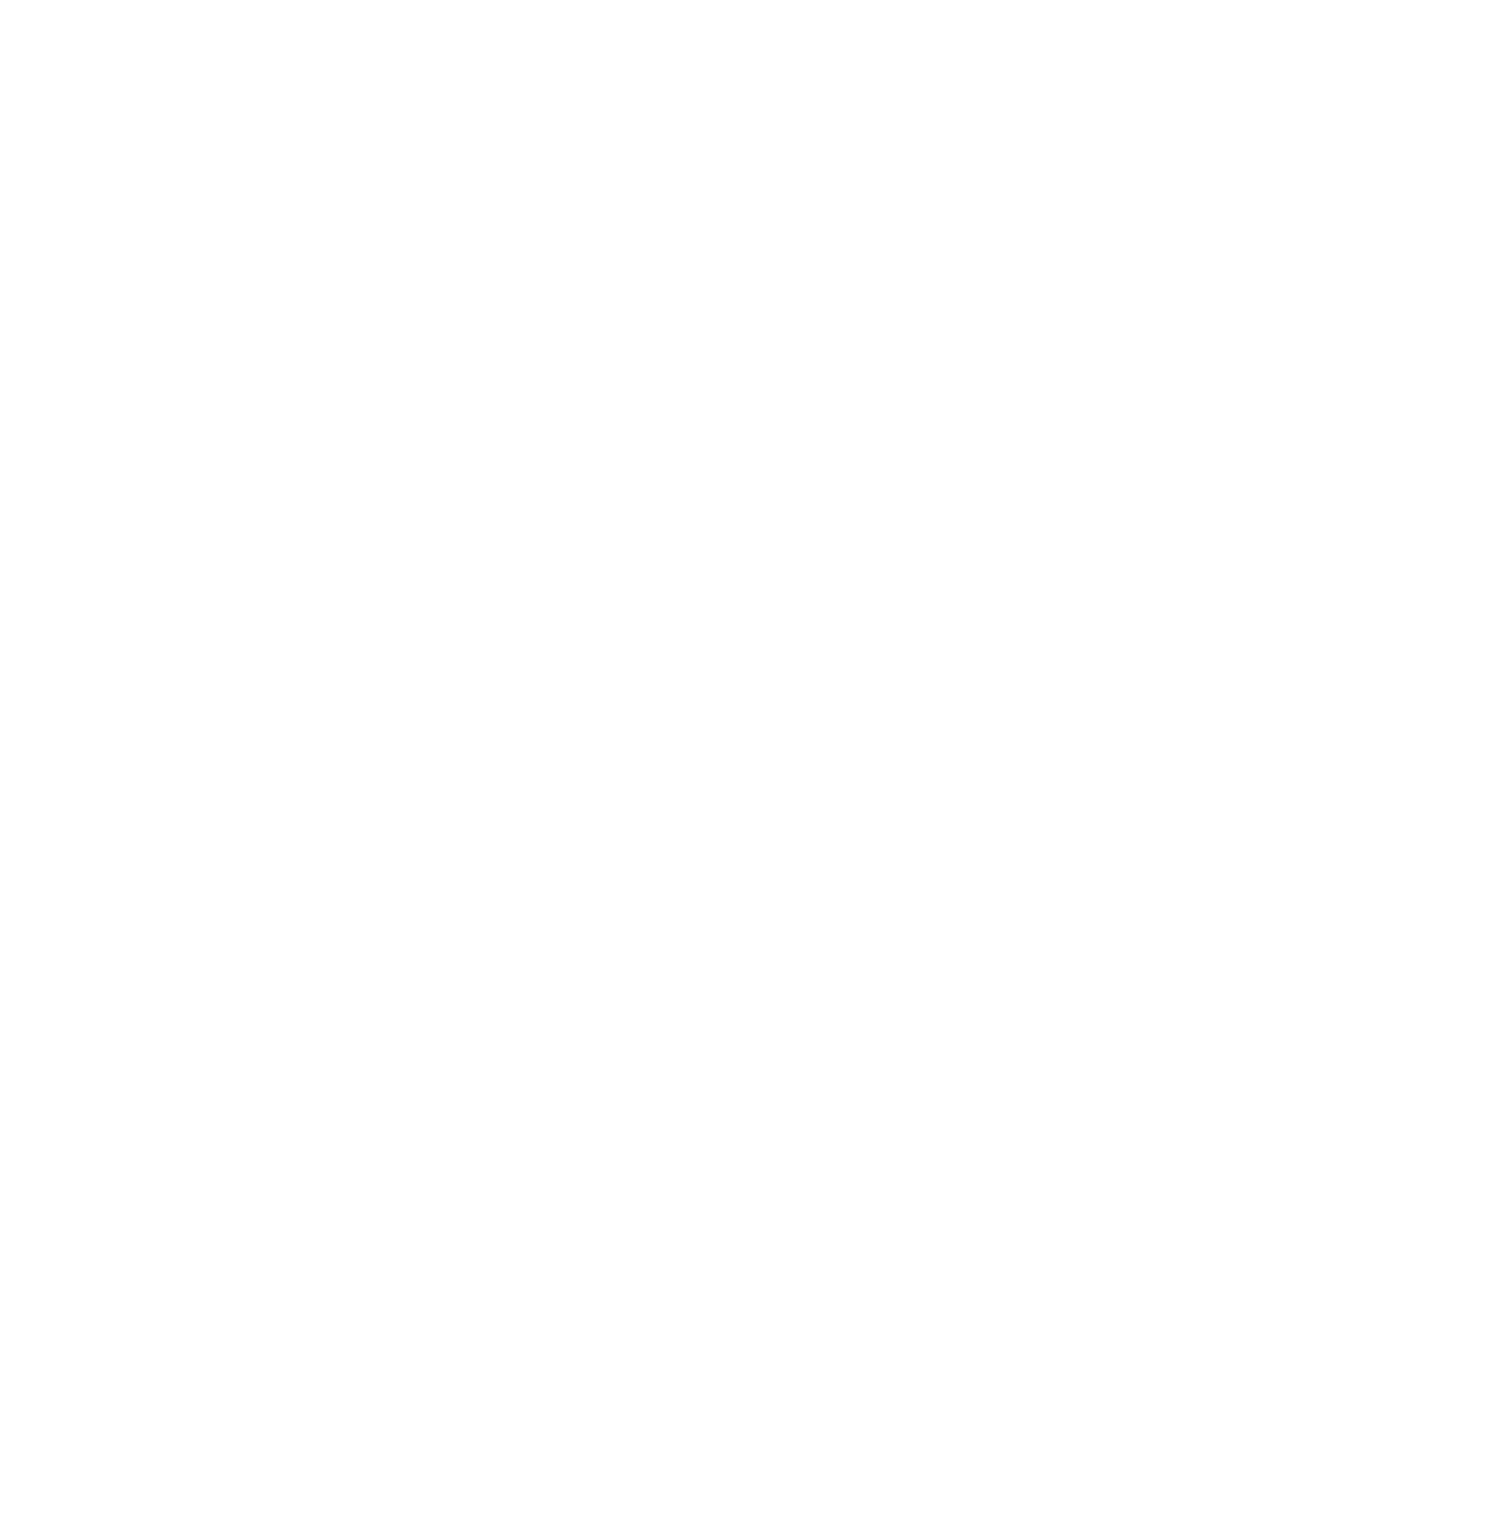 PlushyHost.com - Professional Airbnb Management and Hosting + Luxury Vacation Rental Management